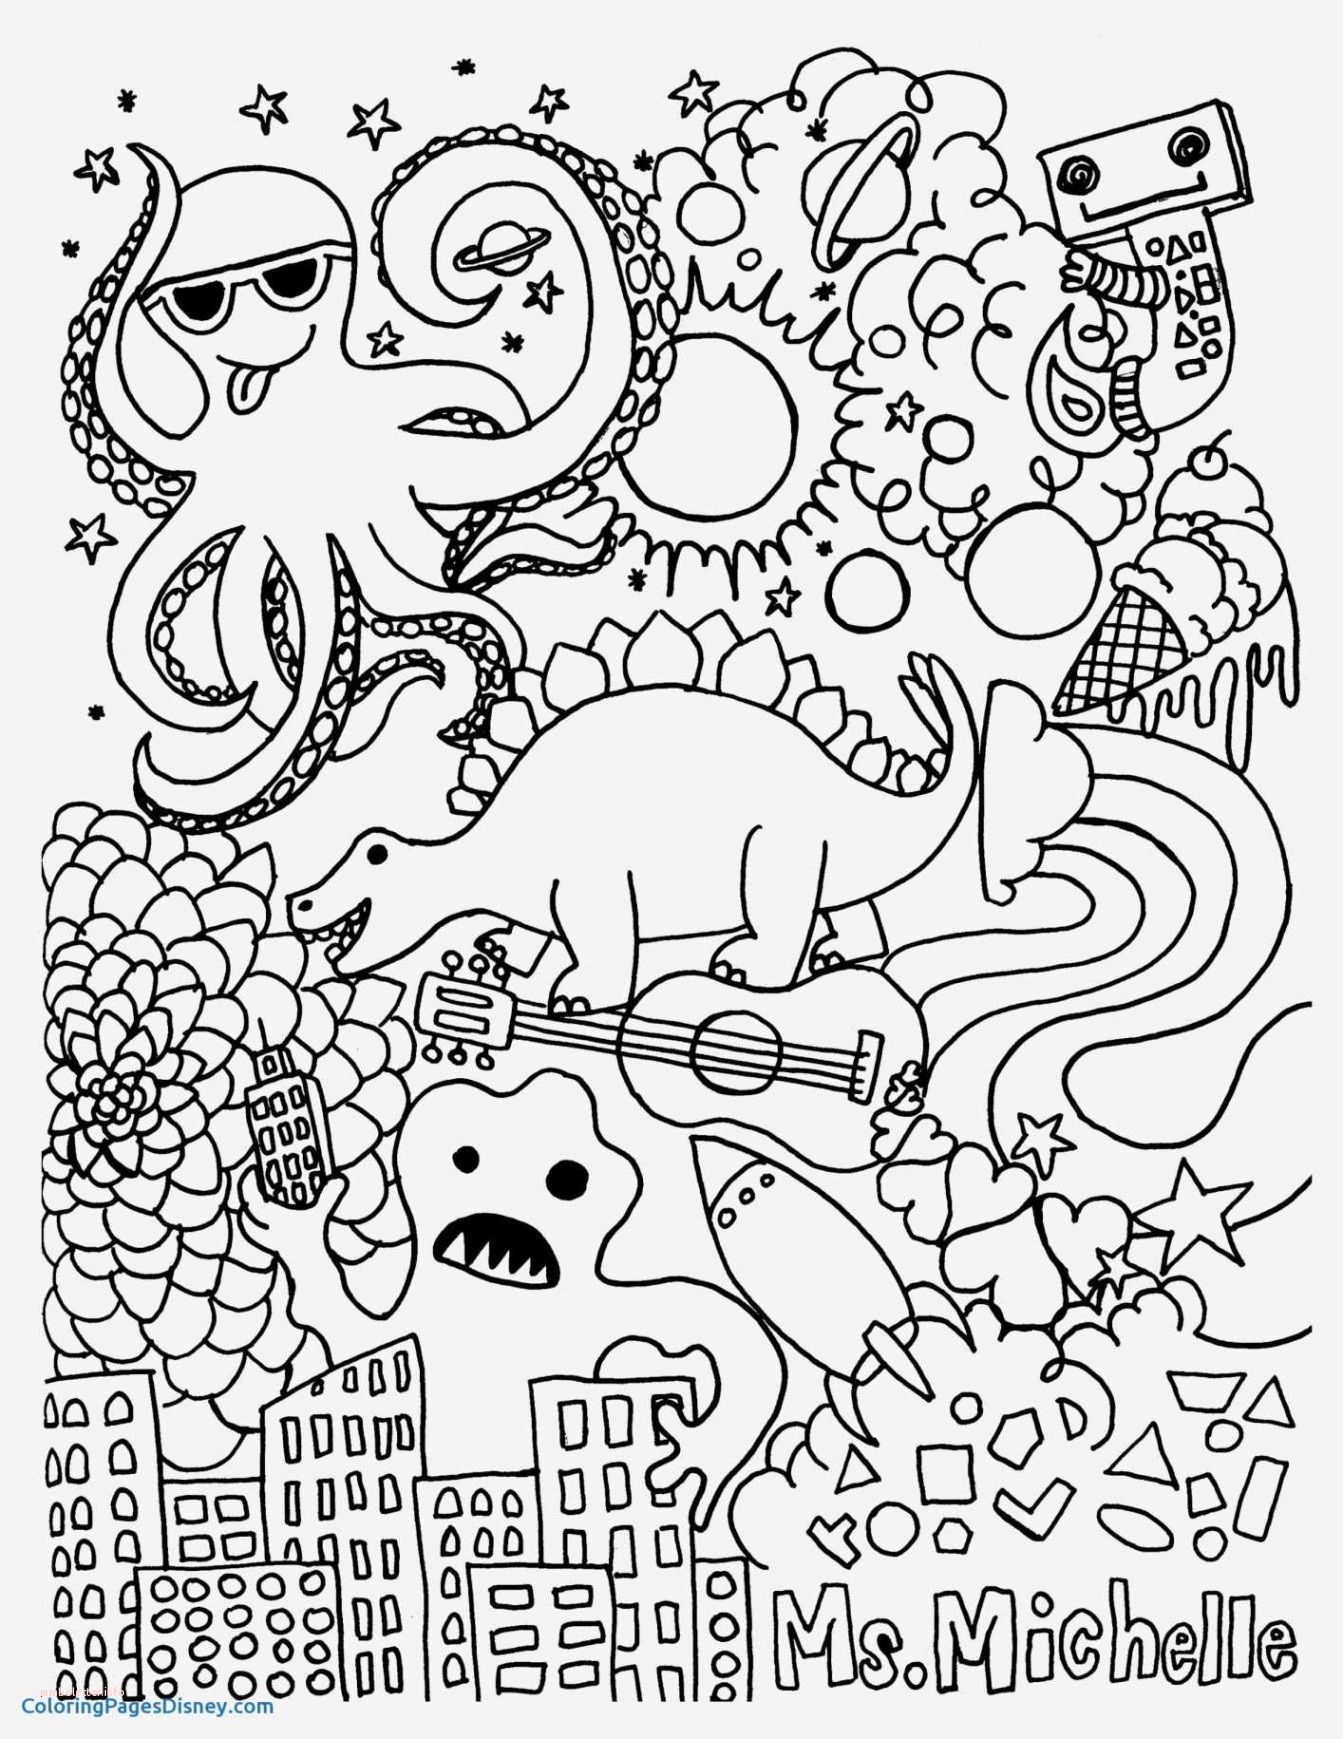 Cowgirl Boots Coloring Pages  Download 12o - Save it to your computer